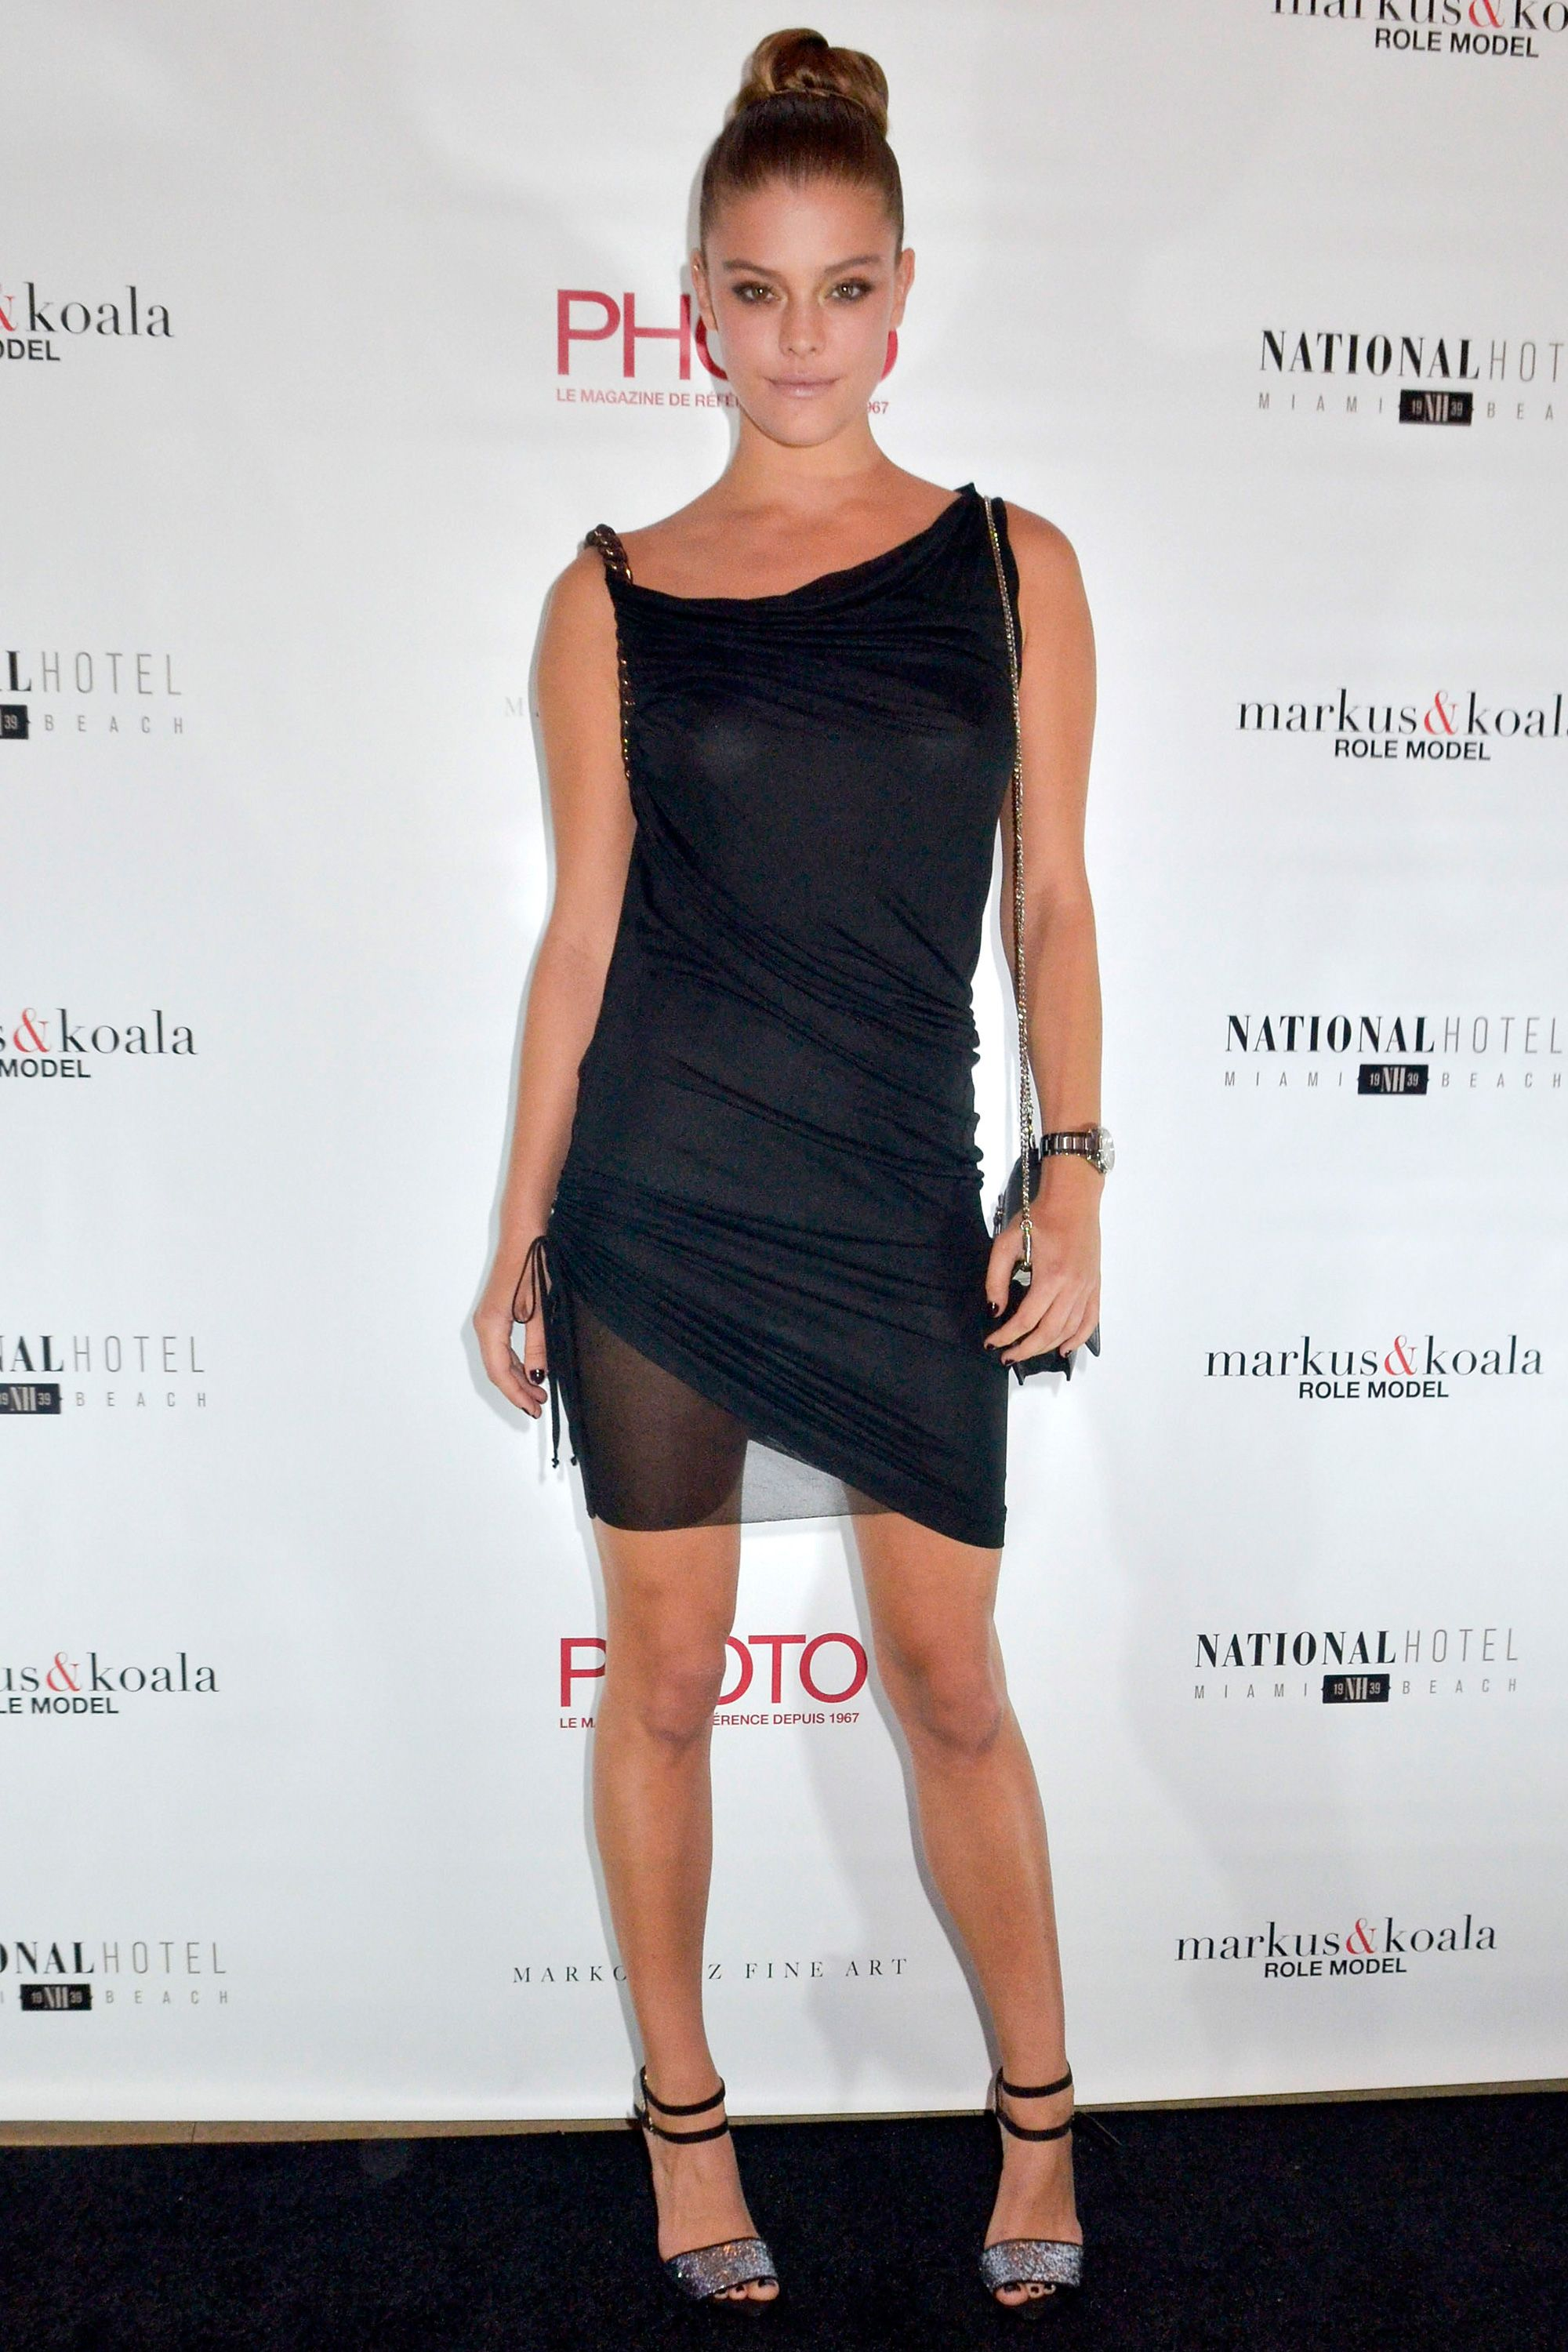 Nina Agdal attends Photo Magazine VIP reception at National Hotel on Dec. 5, 2014 in Miami Beach, Florida.